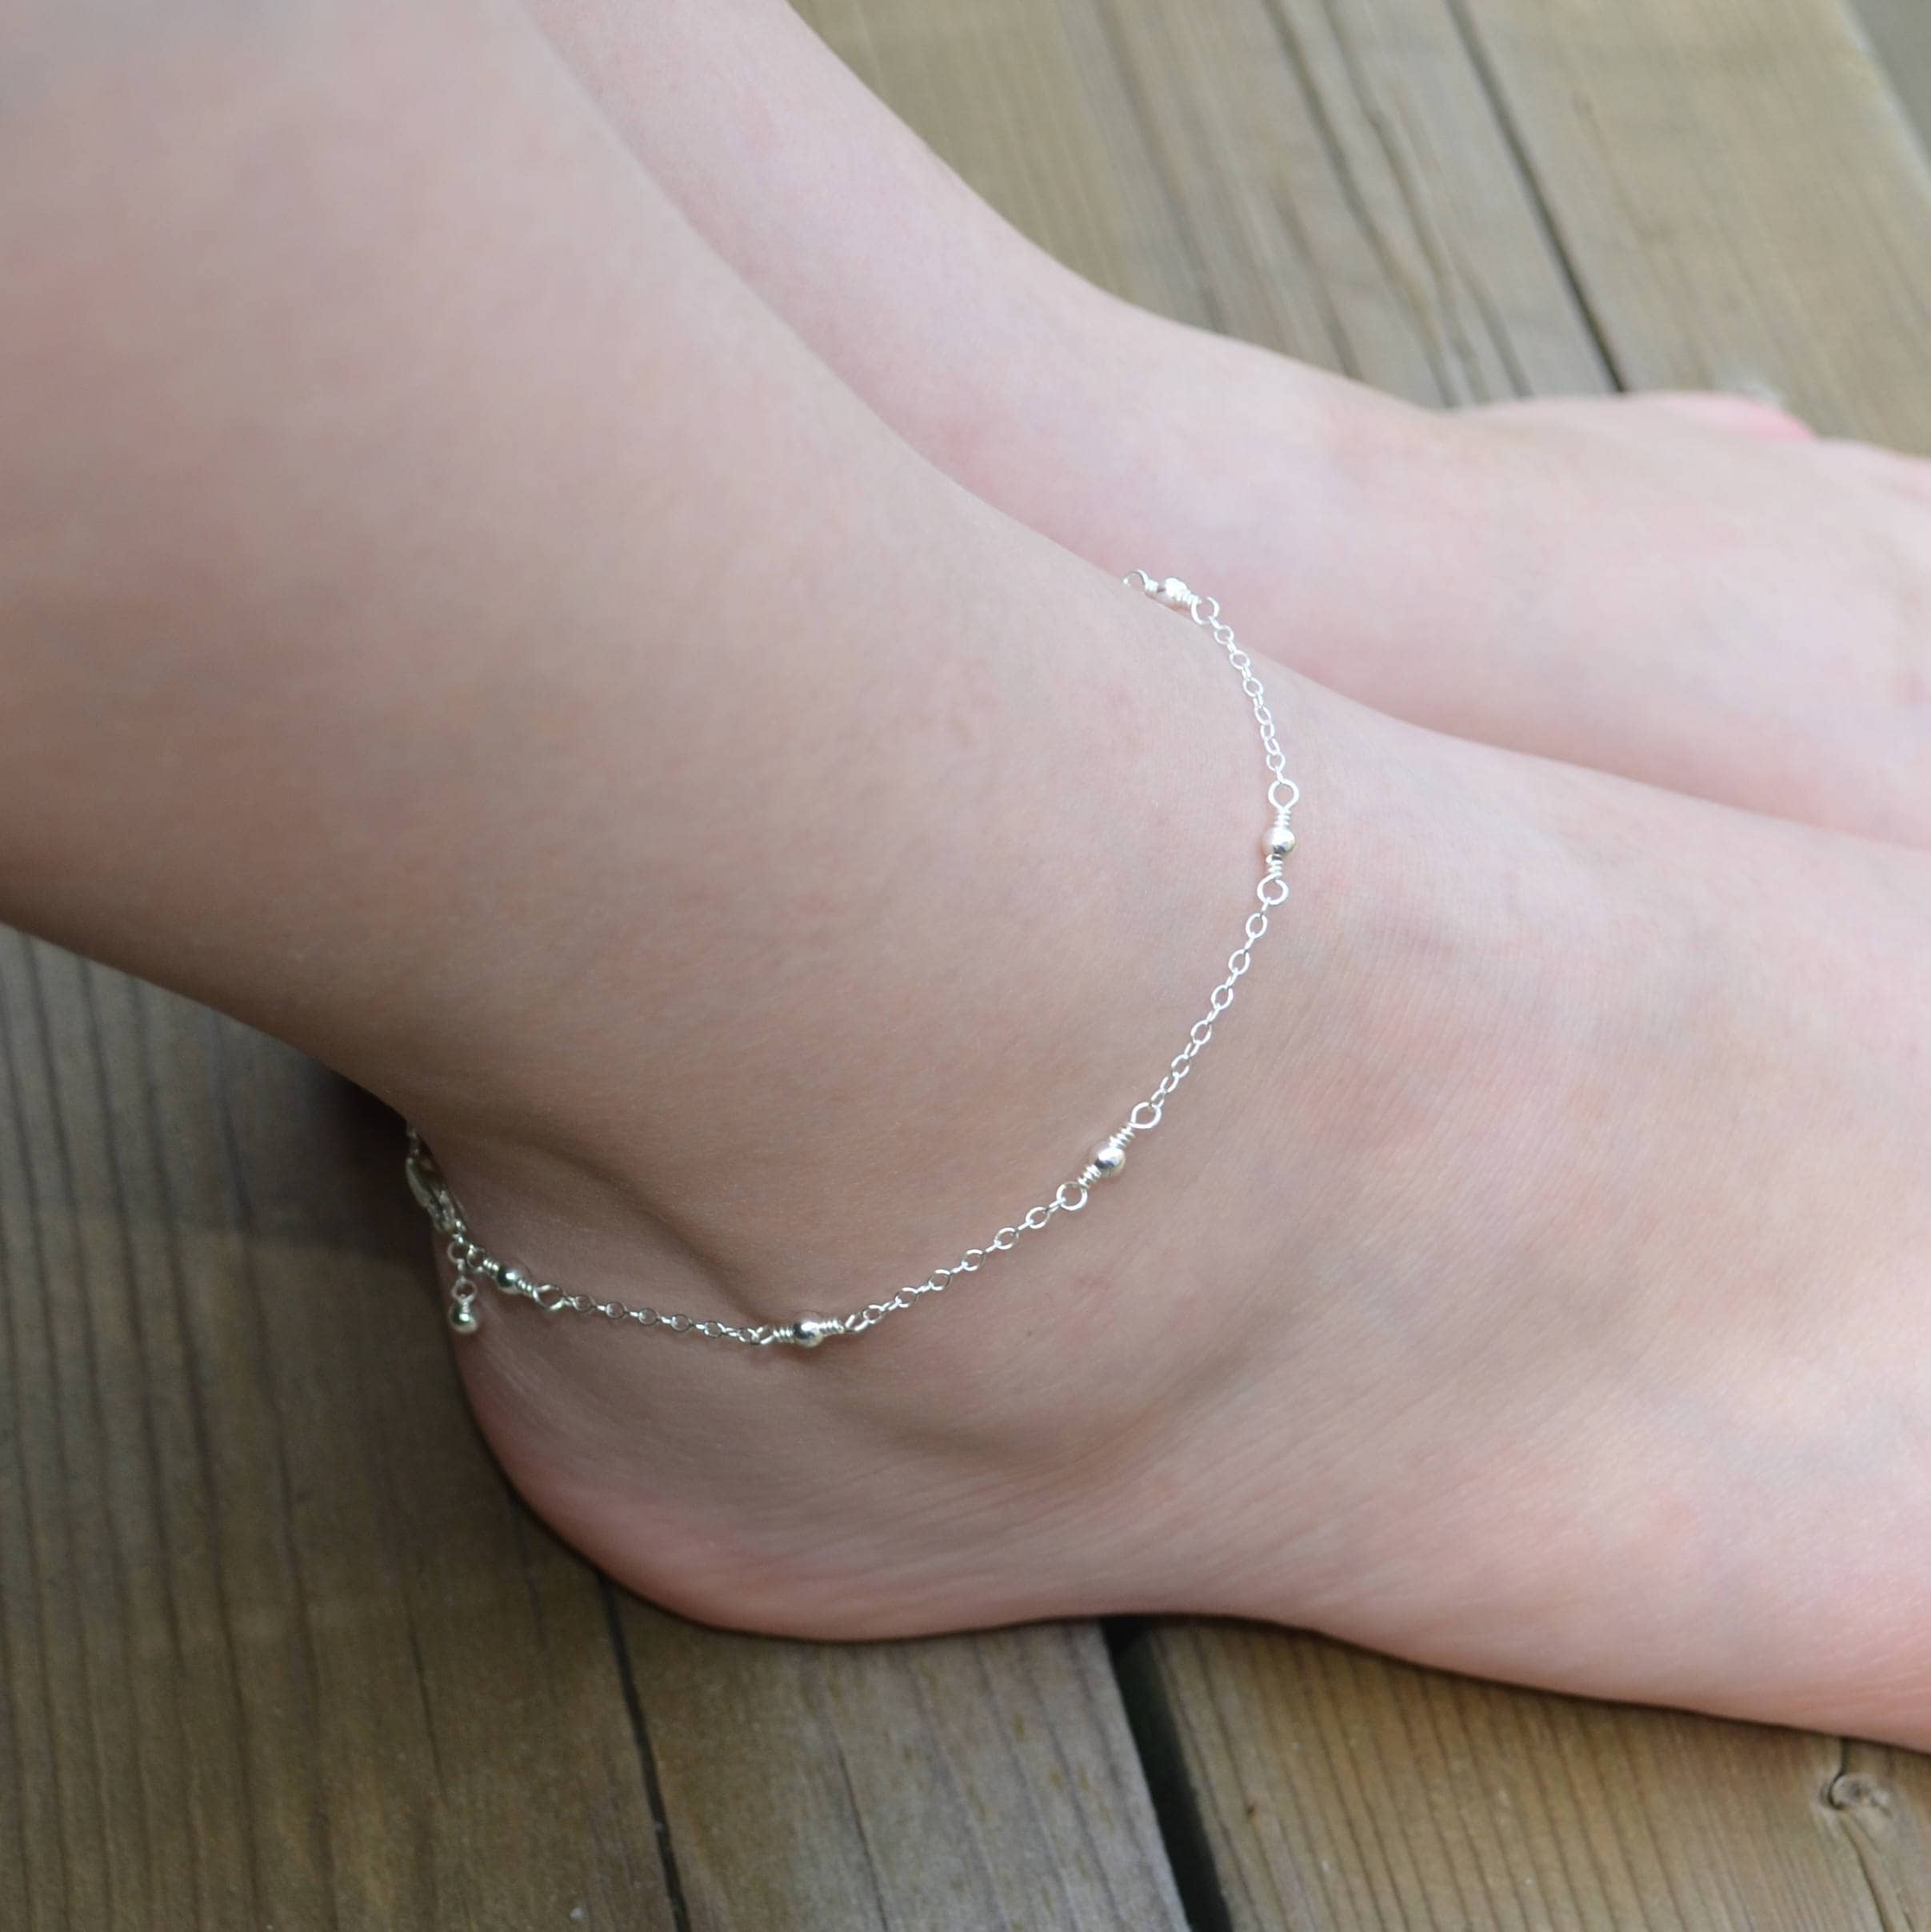 detail bracelet bracelets at jewelry puffed two heart gold tone in products palmbeach anklet cfm simple ankle